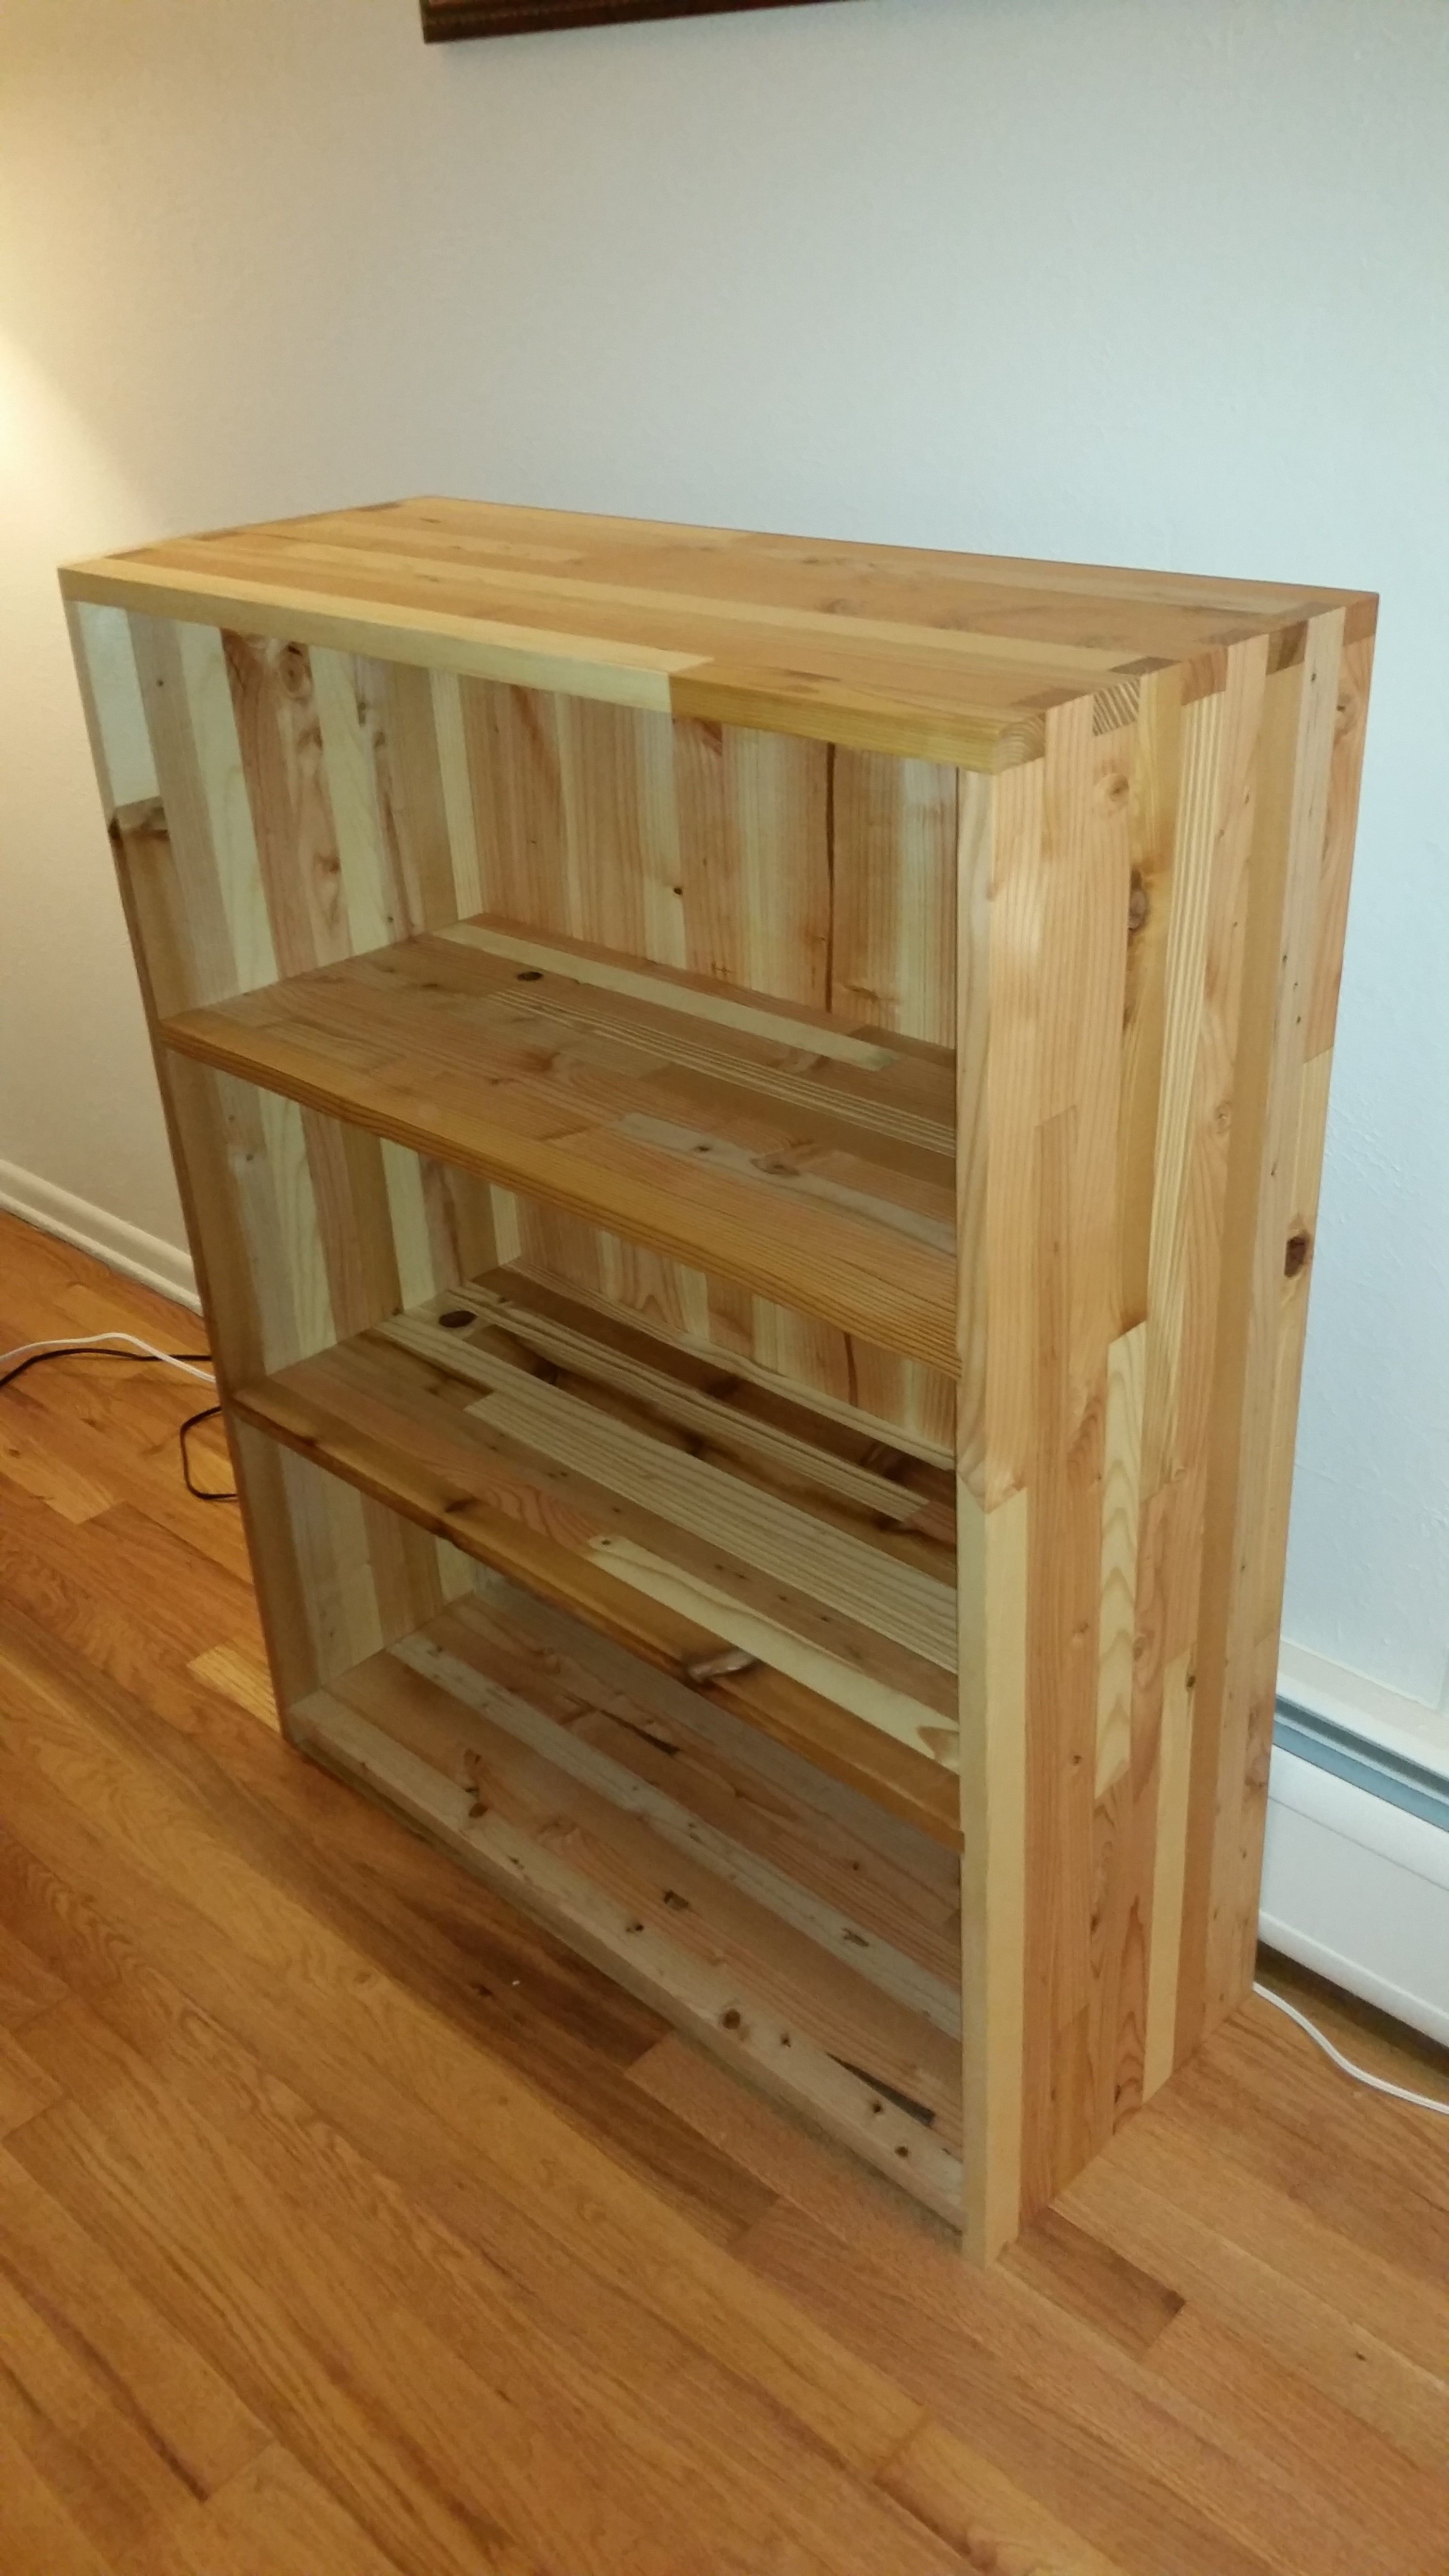 underline guide book bookcase full yellow varnished bookcases solid wall pine of tile wood brown floor stained deer wooden celadon white present arylide bookshelf shelf size light